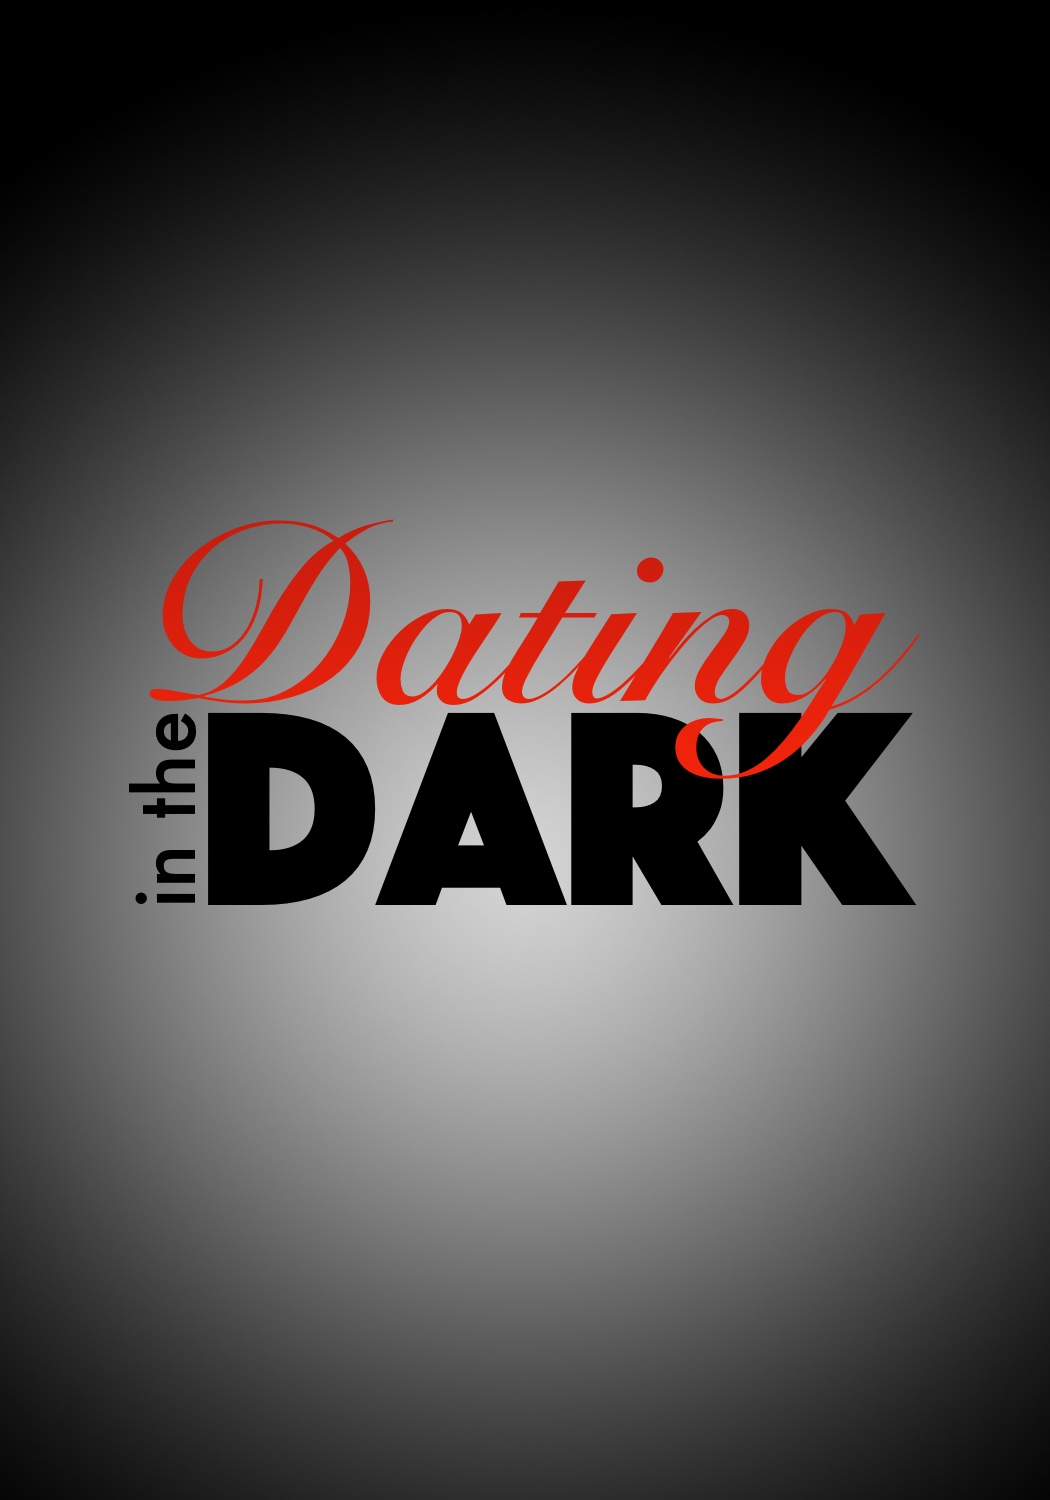 dating in the dark poster.jpg